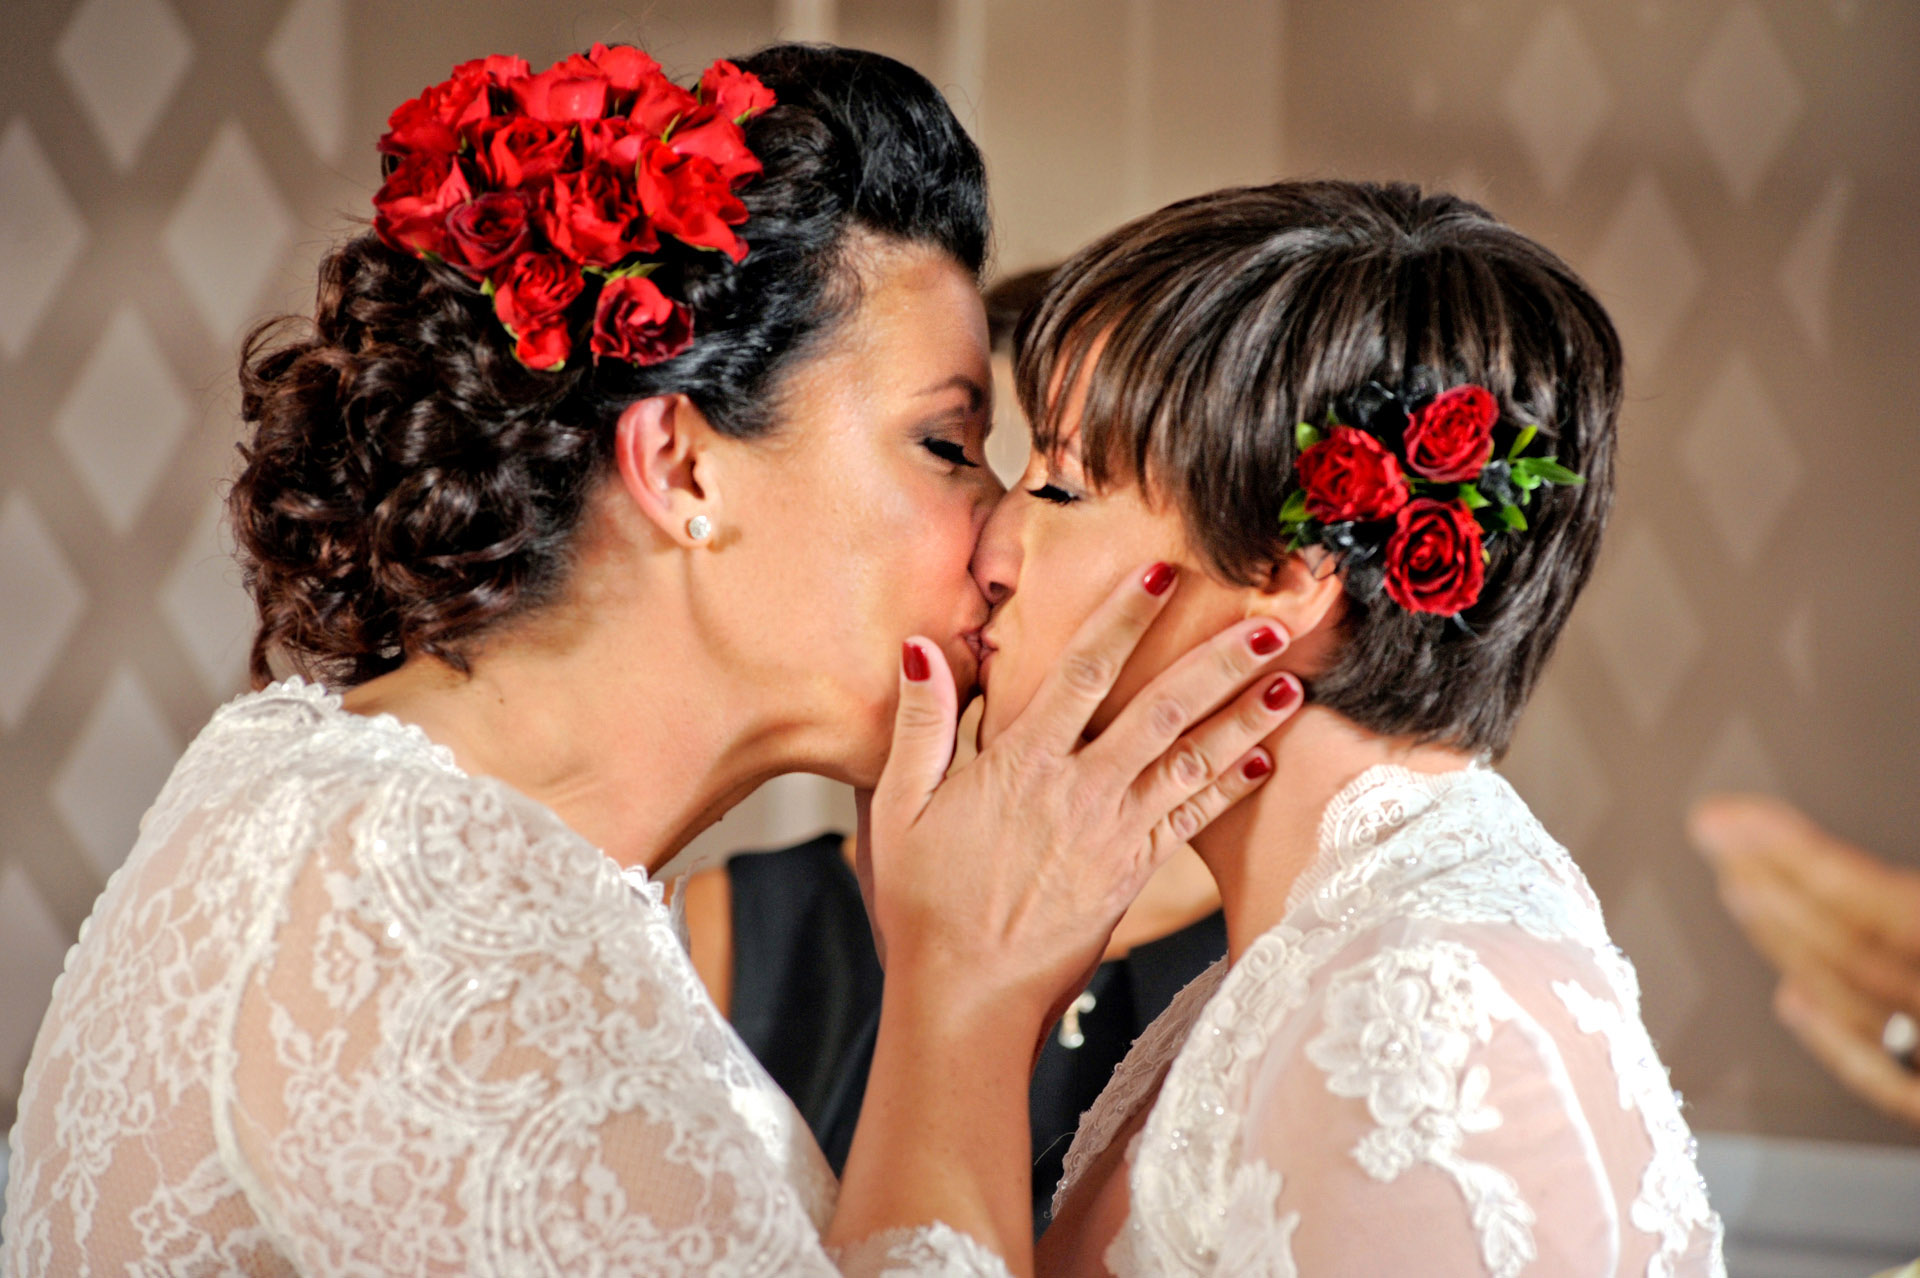 Michigan same sex wedding wedding photographer's photo of the brides kissing after their same sex wedding in Livonia, Michigan!